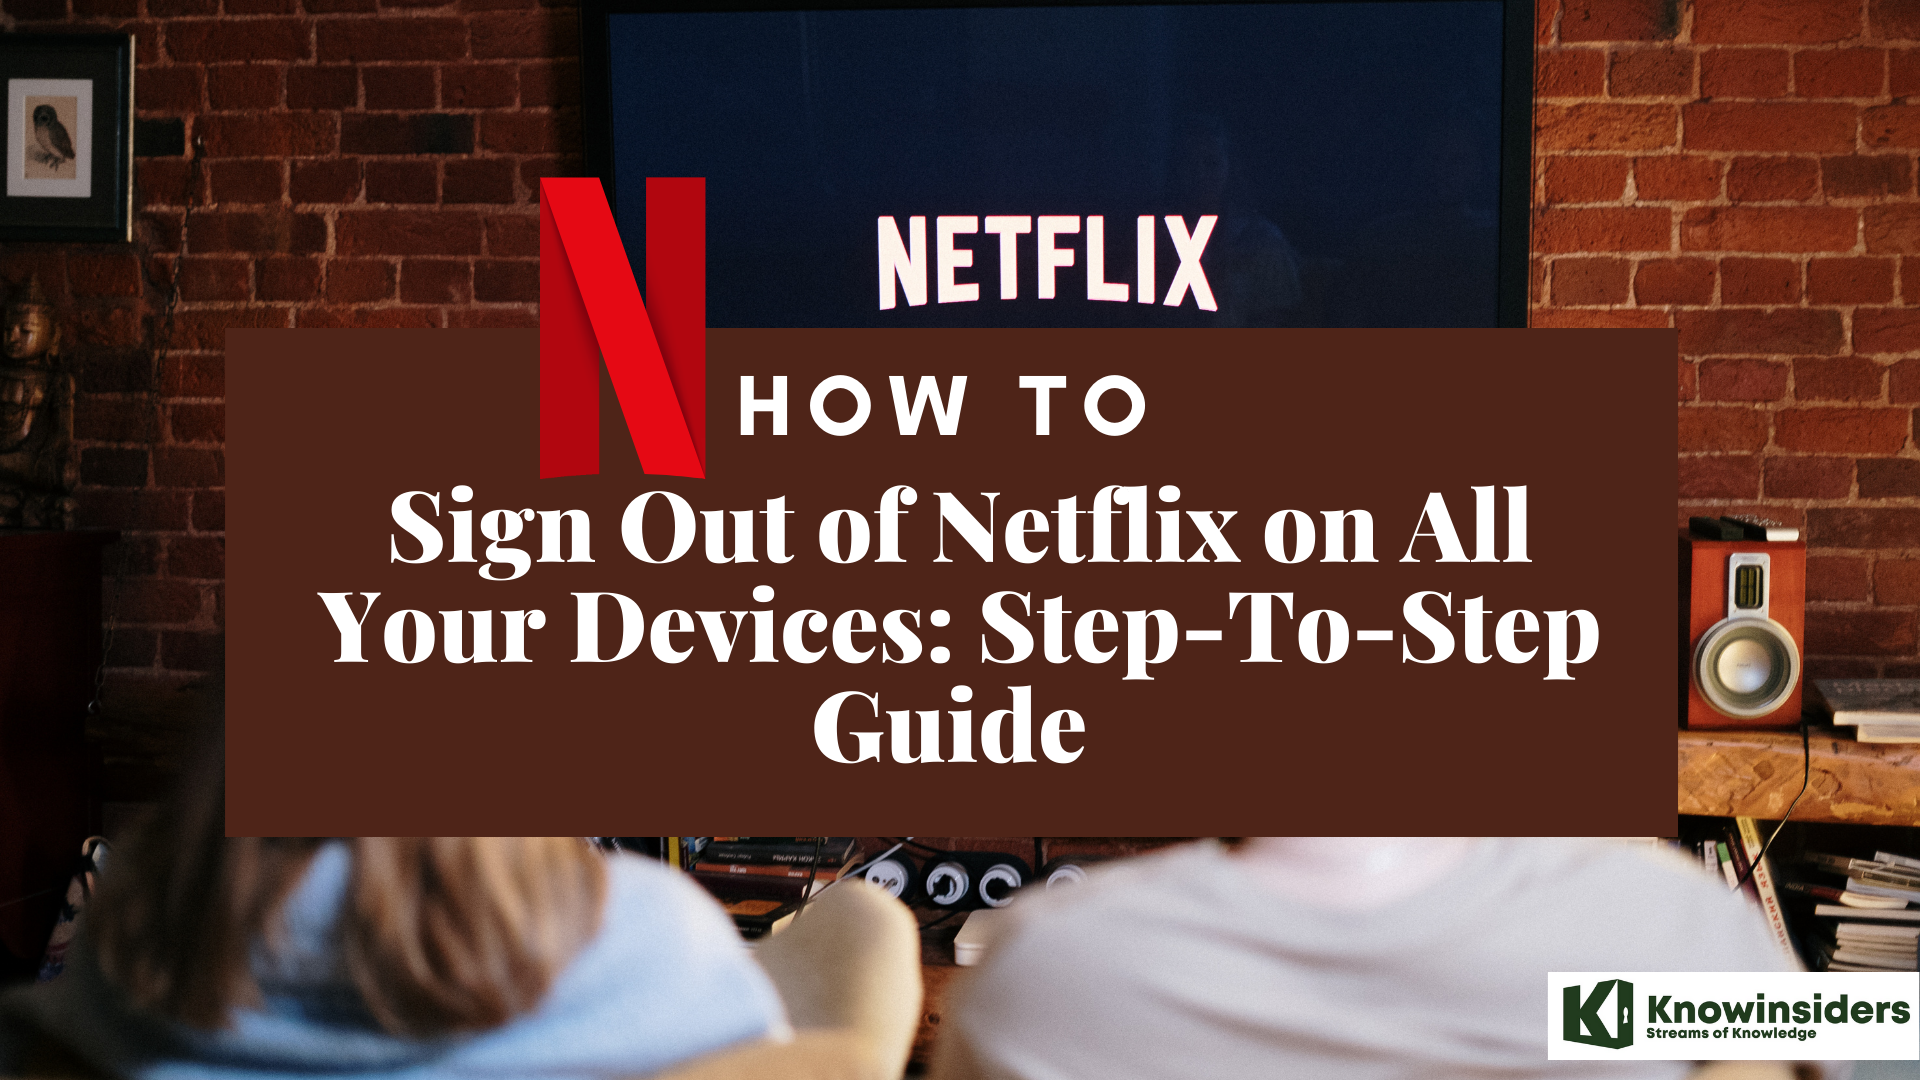 The Simple Ways to Log Out of Netflix on All Devices